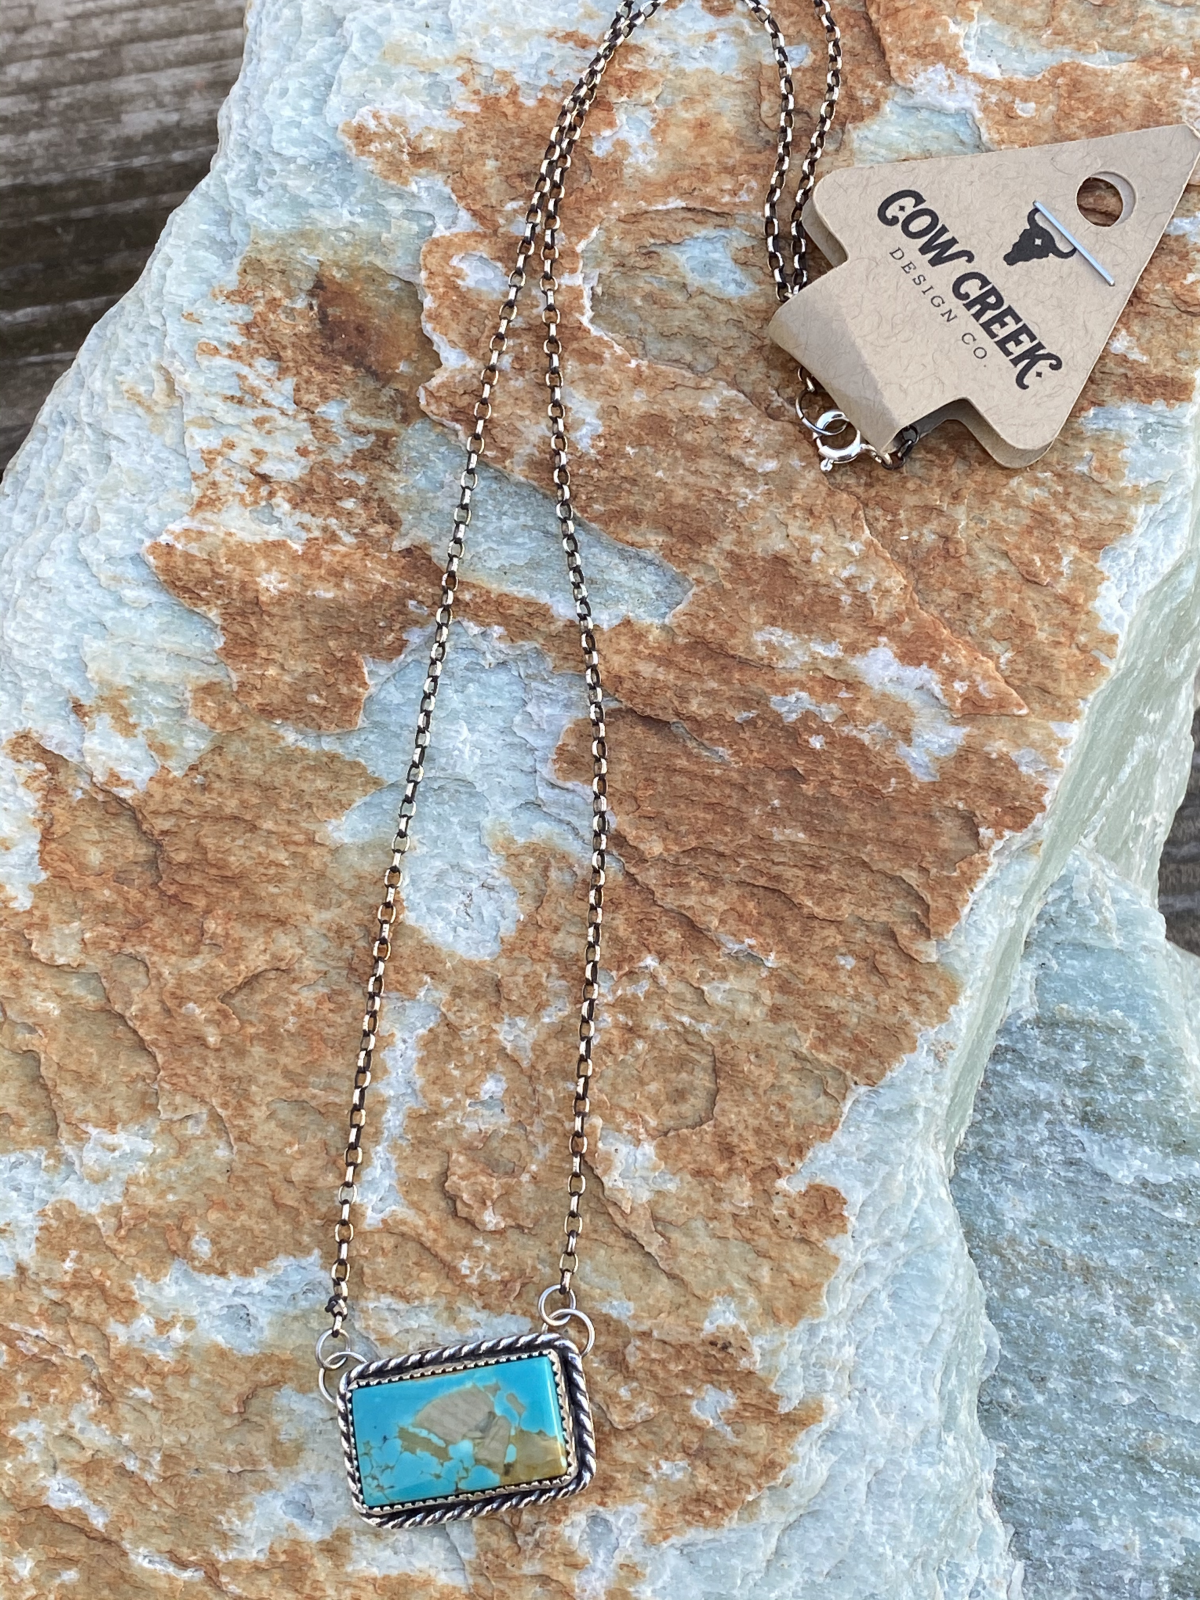 Pilot Mountain Bar Necklace from Cow Creek Designs